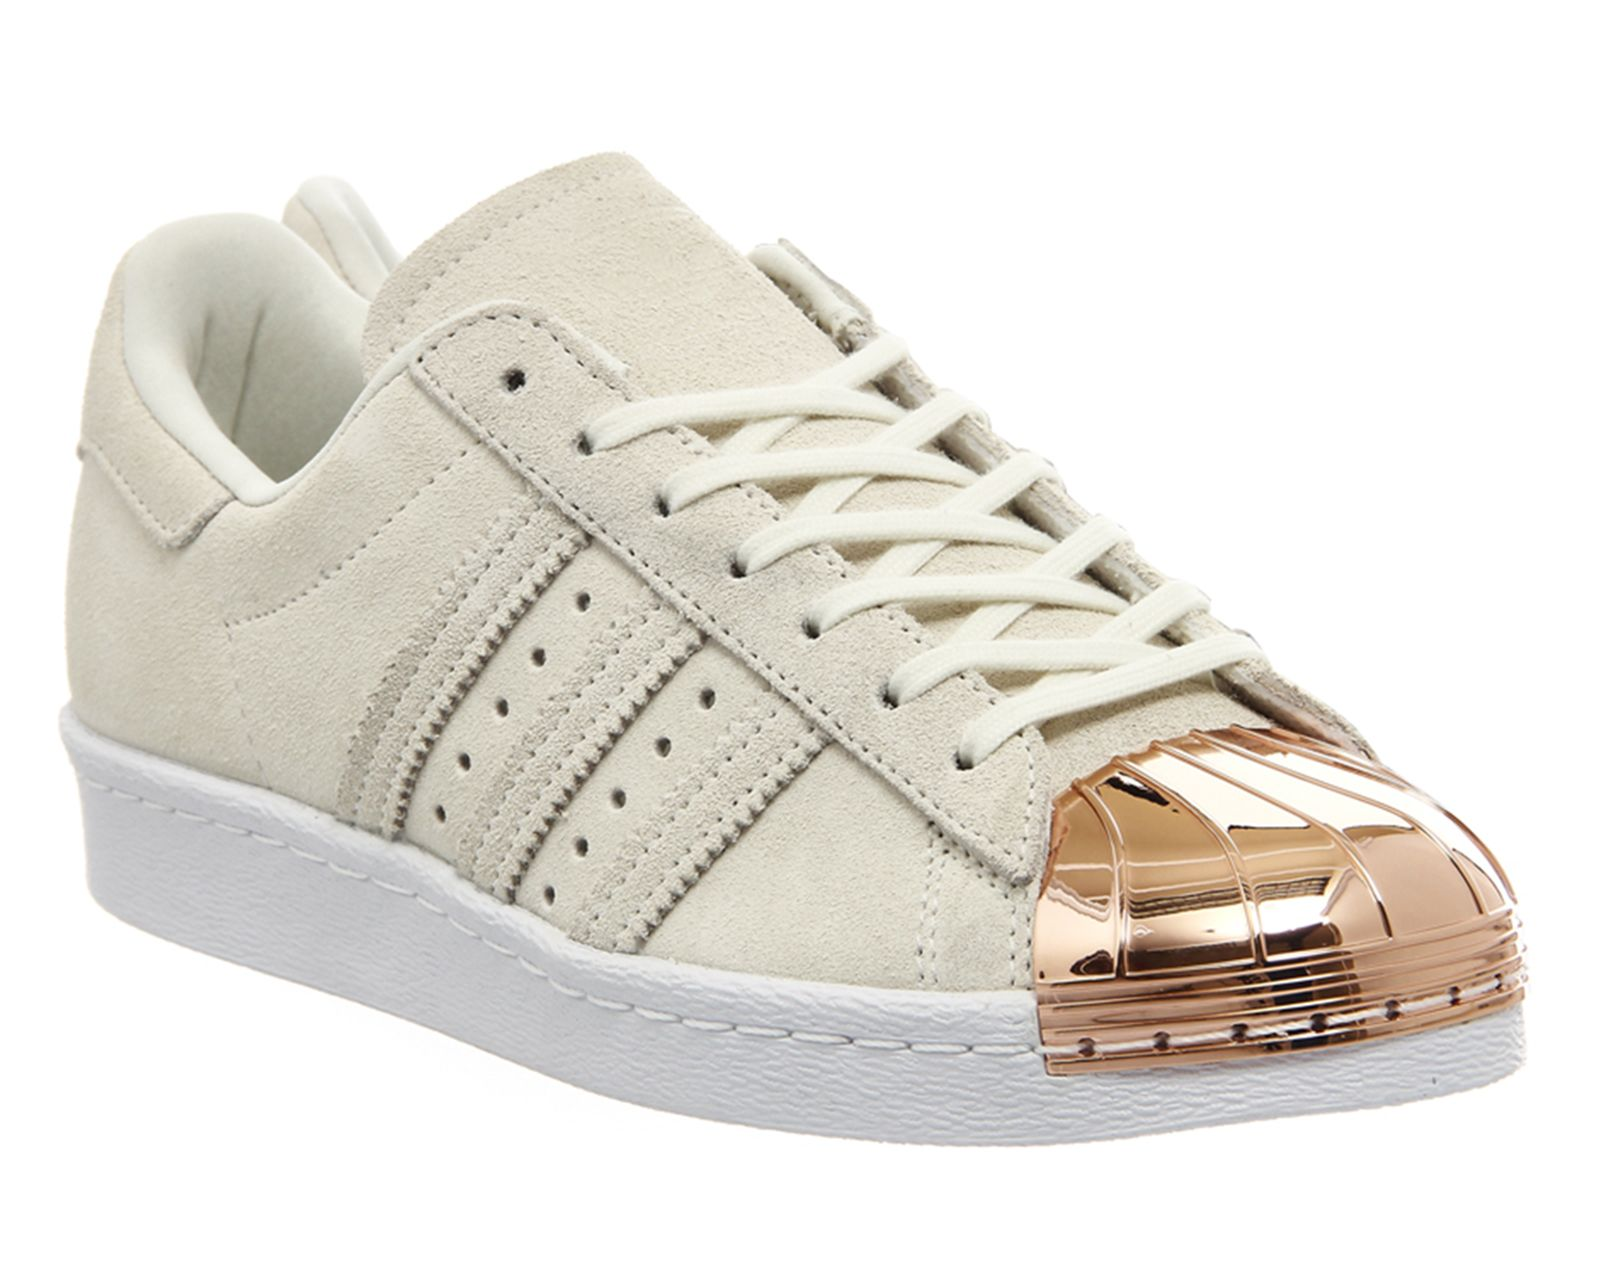 Adidas Superstar 80\u0027s Metal Toe W OFF WHITE ROSE GOLD Trainers Shoes